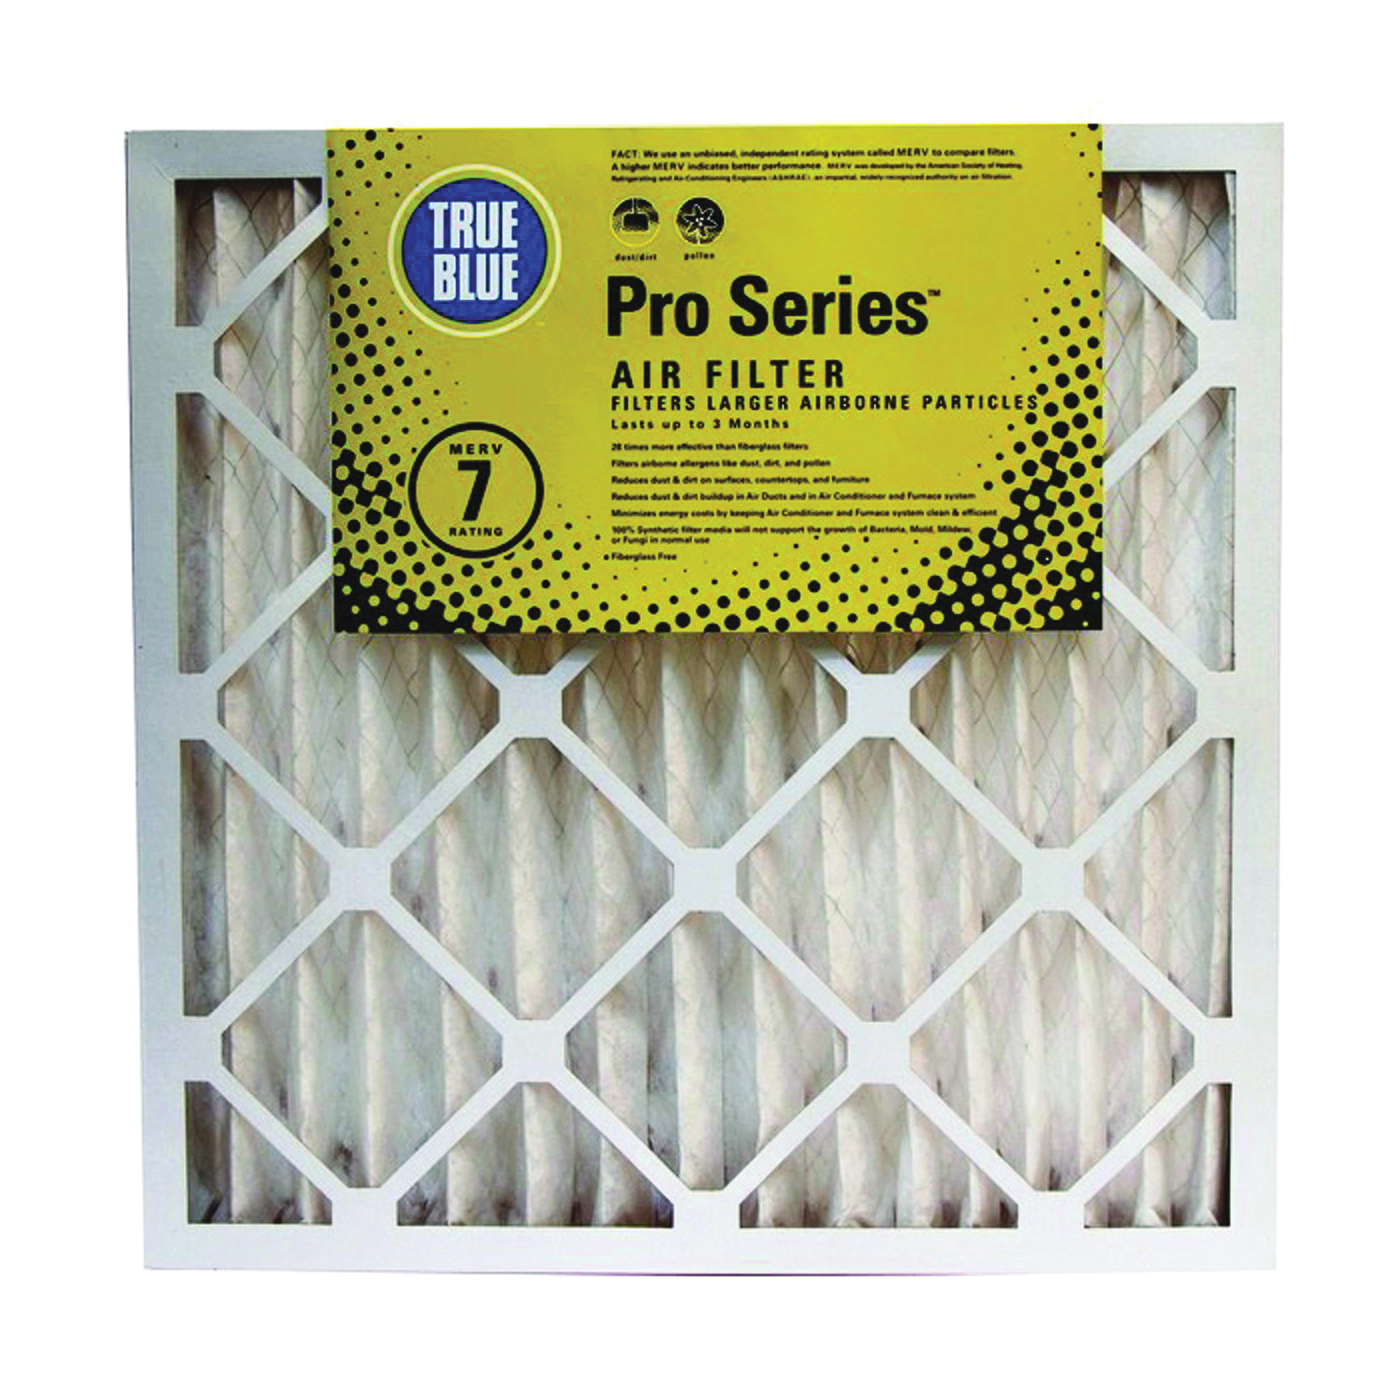 Picture of True Blue PRO216252 Air Filter, 25 in L, 16 in W, 7 MERV, 53.7 % Filter Efficiency, Synthetic Pleated Filter Media